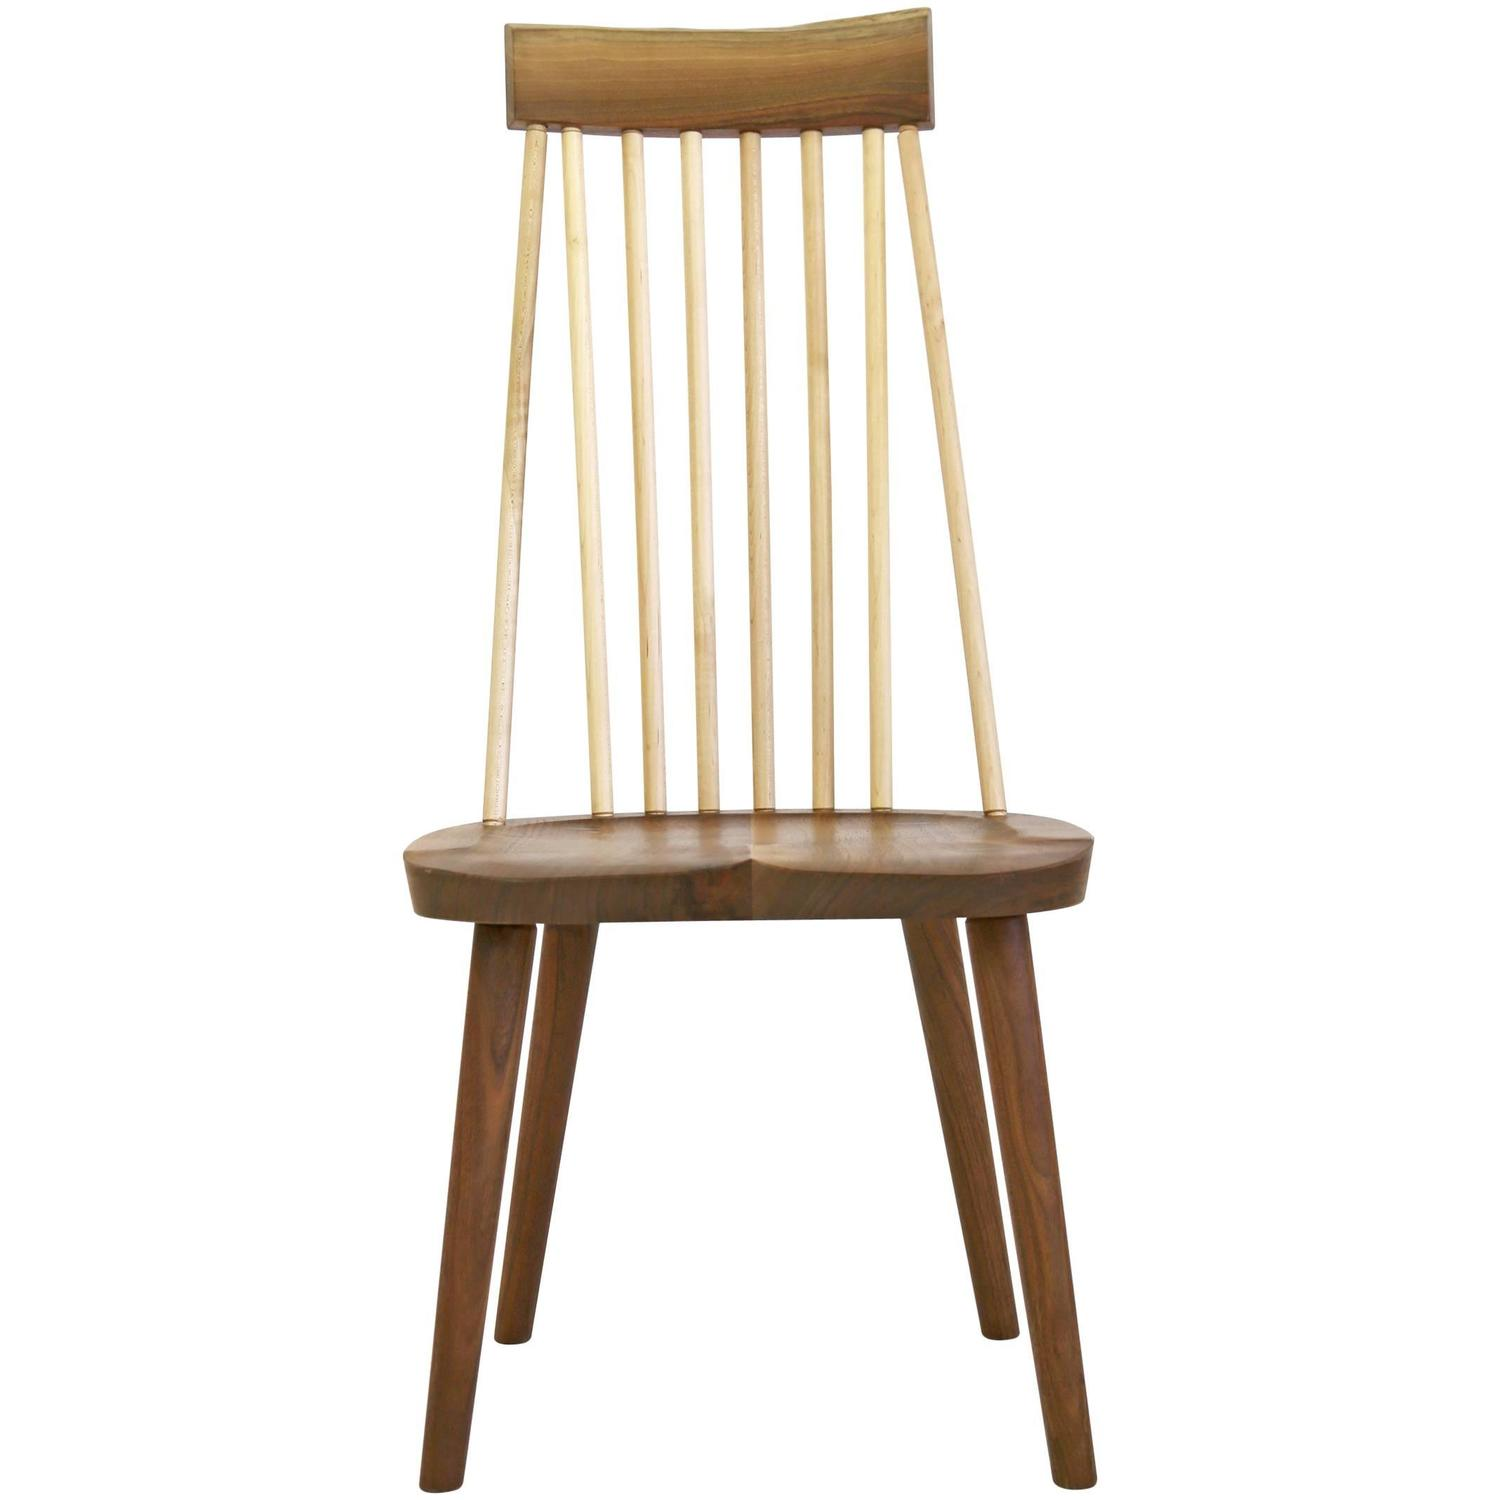 Shaker Style High Back Hardwood Chair In Walnut And Maple By Amish  Woodworker For Sale At 1stdibs